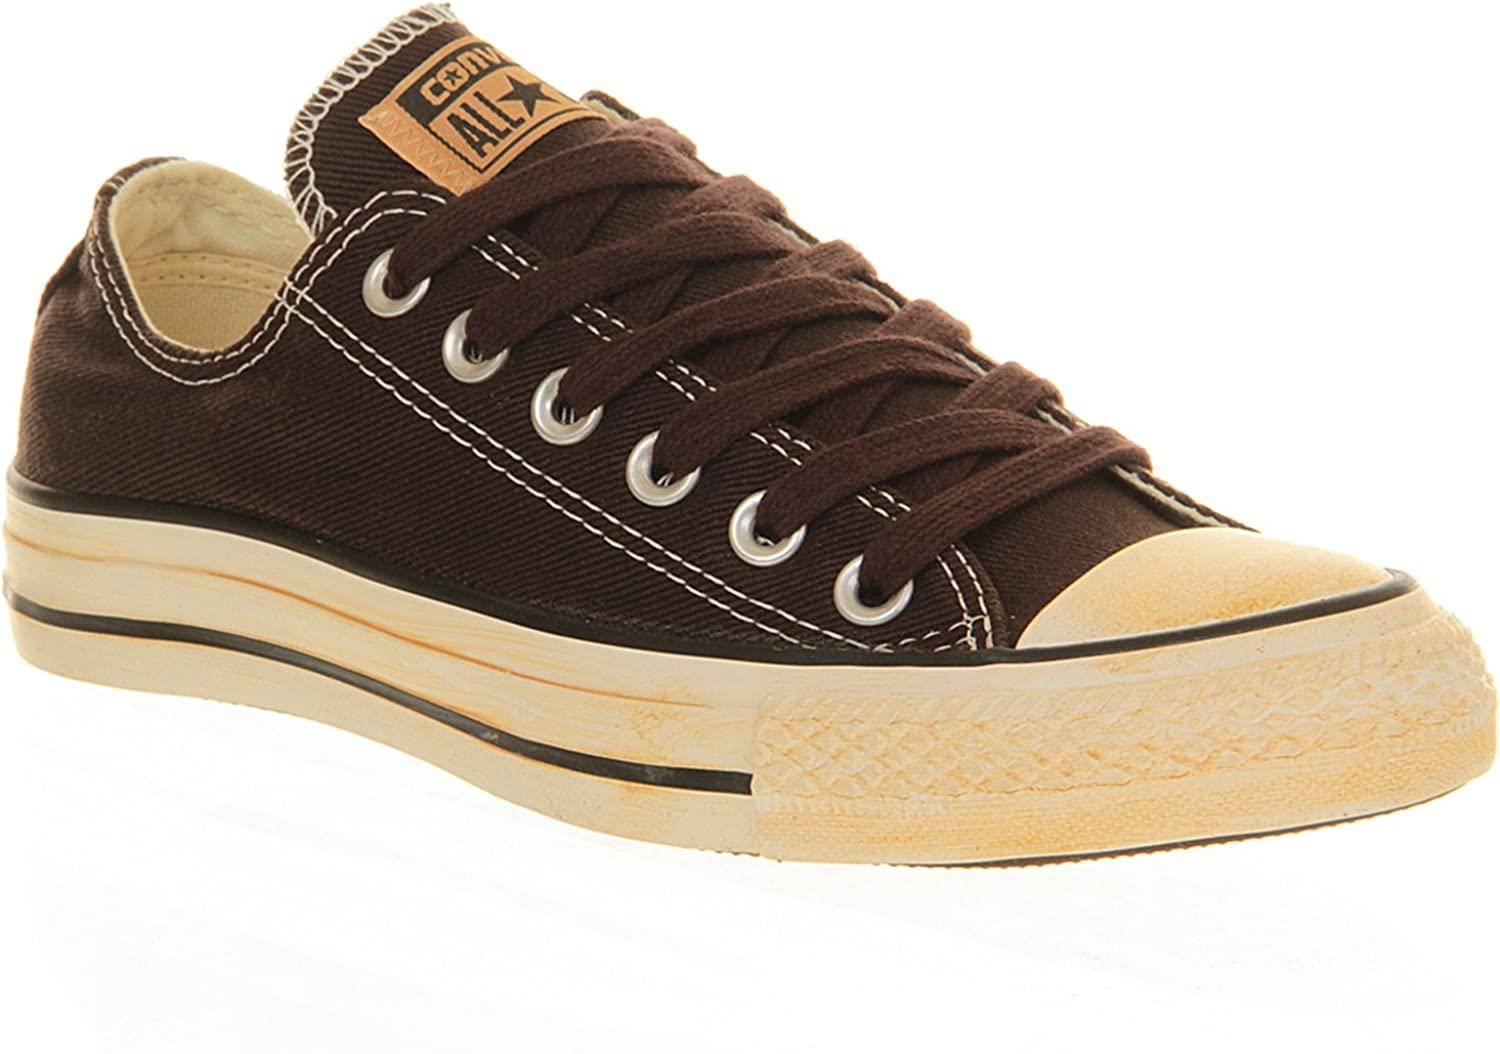 Converse Ct Vint Twil Zp, Unisex Adults' Sneakers